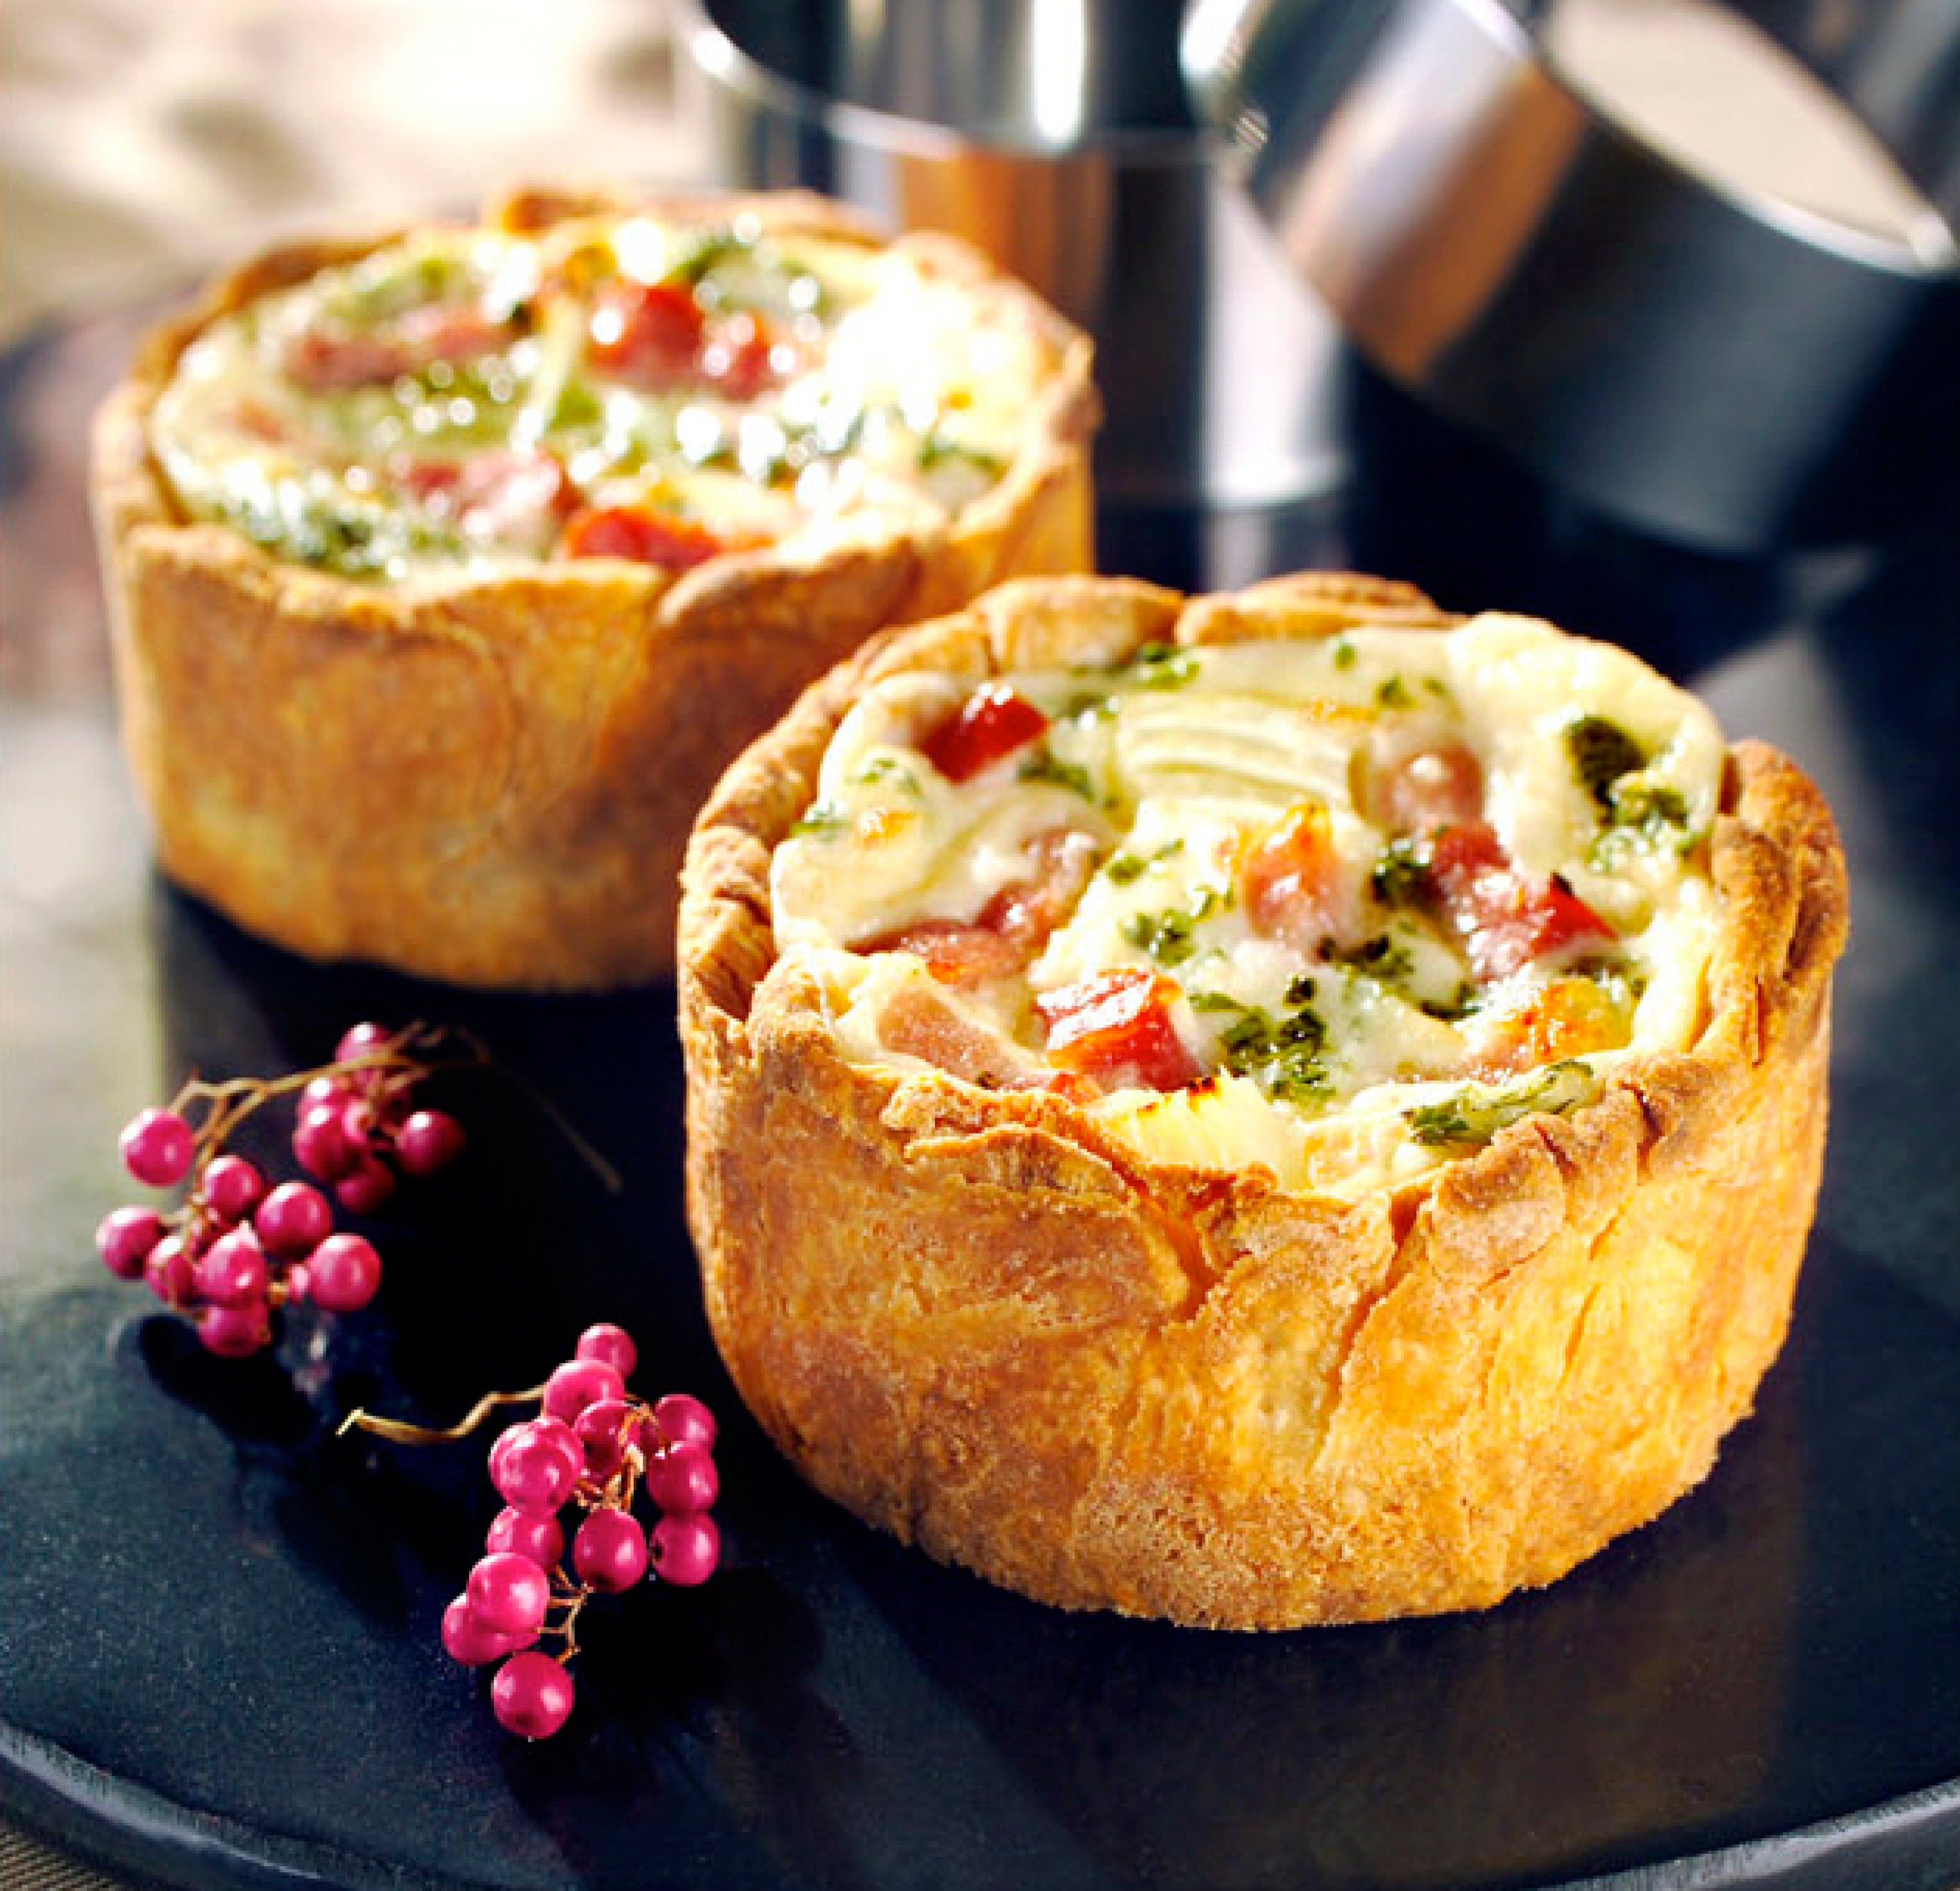 Classic quiche lorraine lacanche range cookers and for Quiche not setting